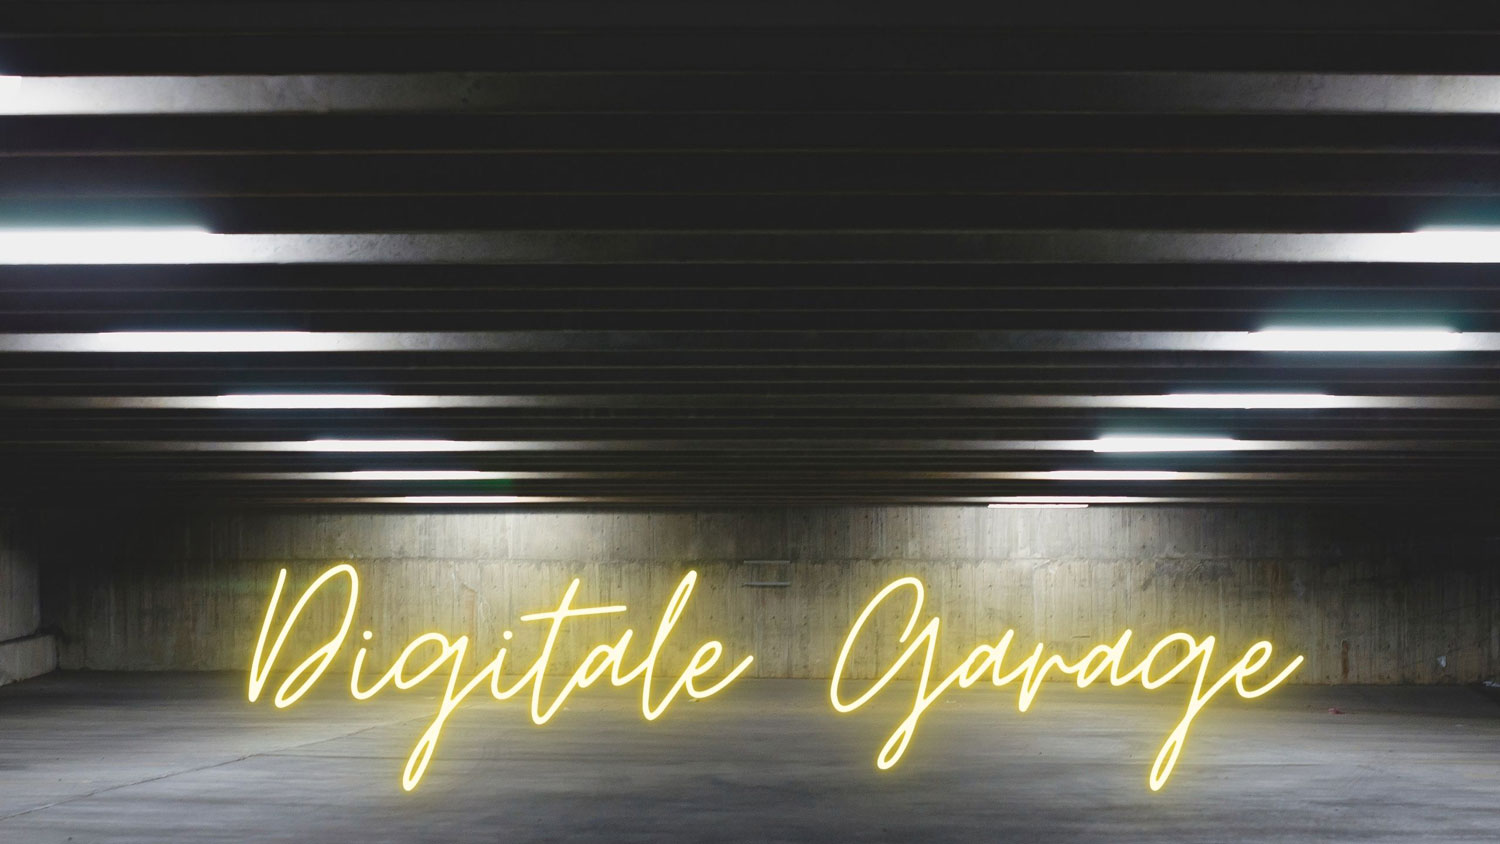 Digitale Garage